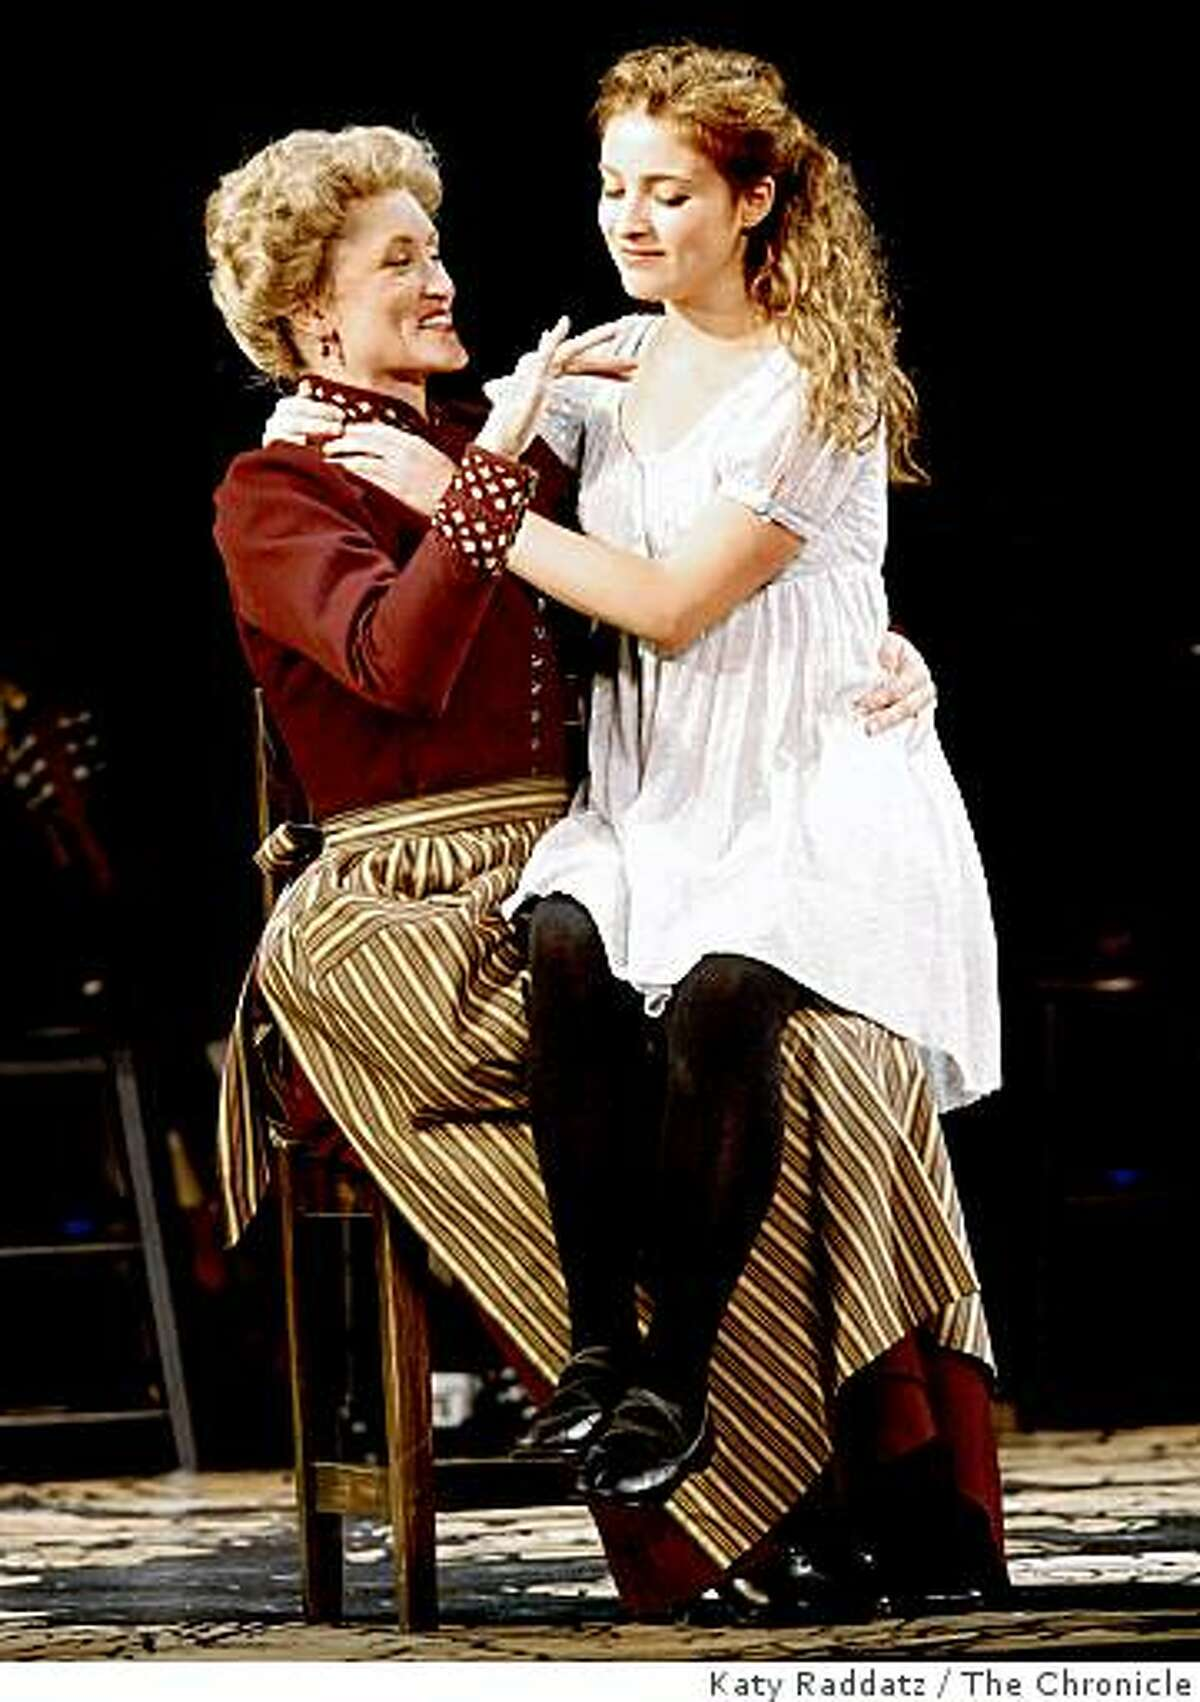 """An Adult Woman (here, Mother), played by Angela Reed, left, attempting to give sexual information to her daughter Wendla, played by Christy Altomare, right, at the opening performance of """"Spring Awakening,"""" launch of the national tour of big Broadway hits in the Best of Broadway series at the Curran Theater in San Francisco, Calif. on Sunday, Sept. 7, 2008."""